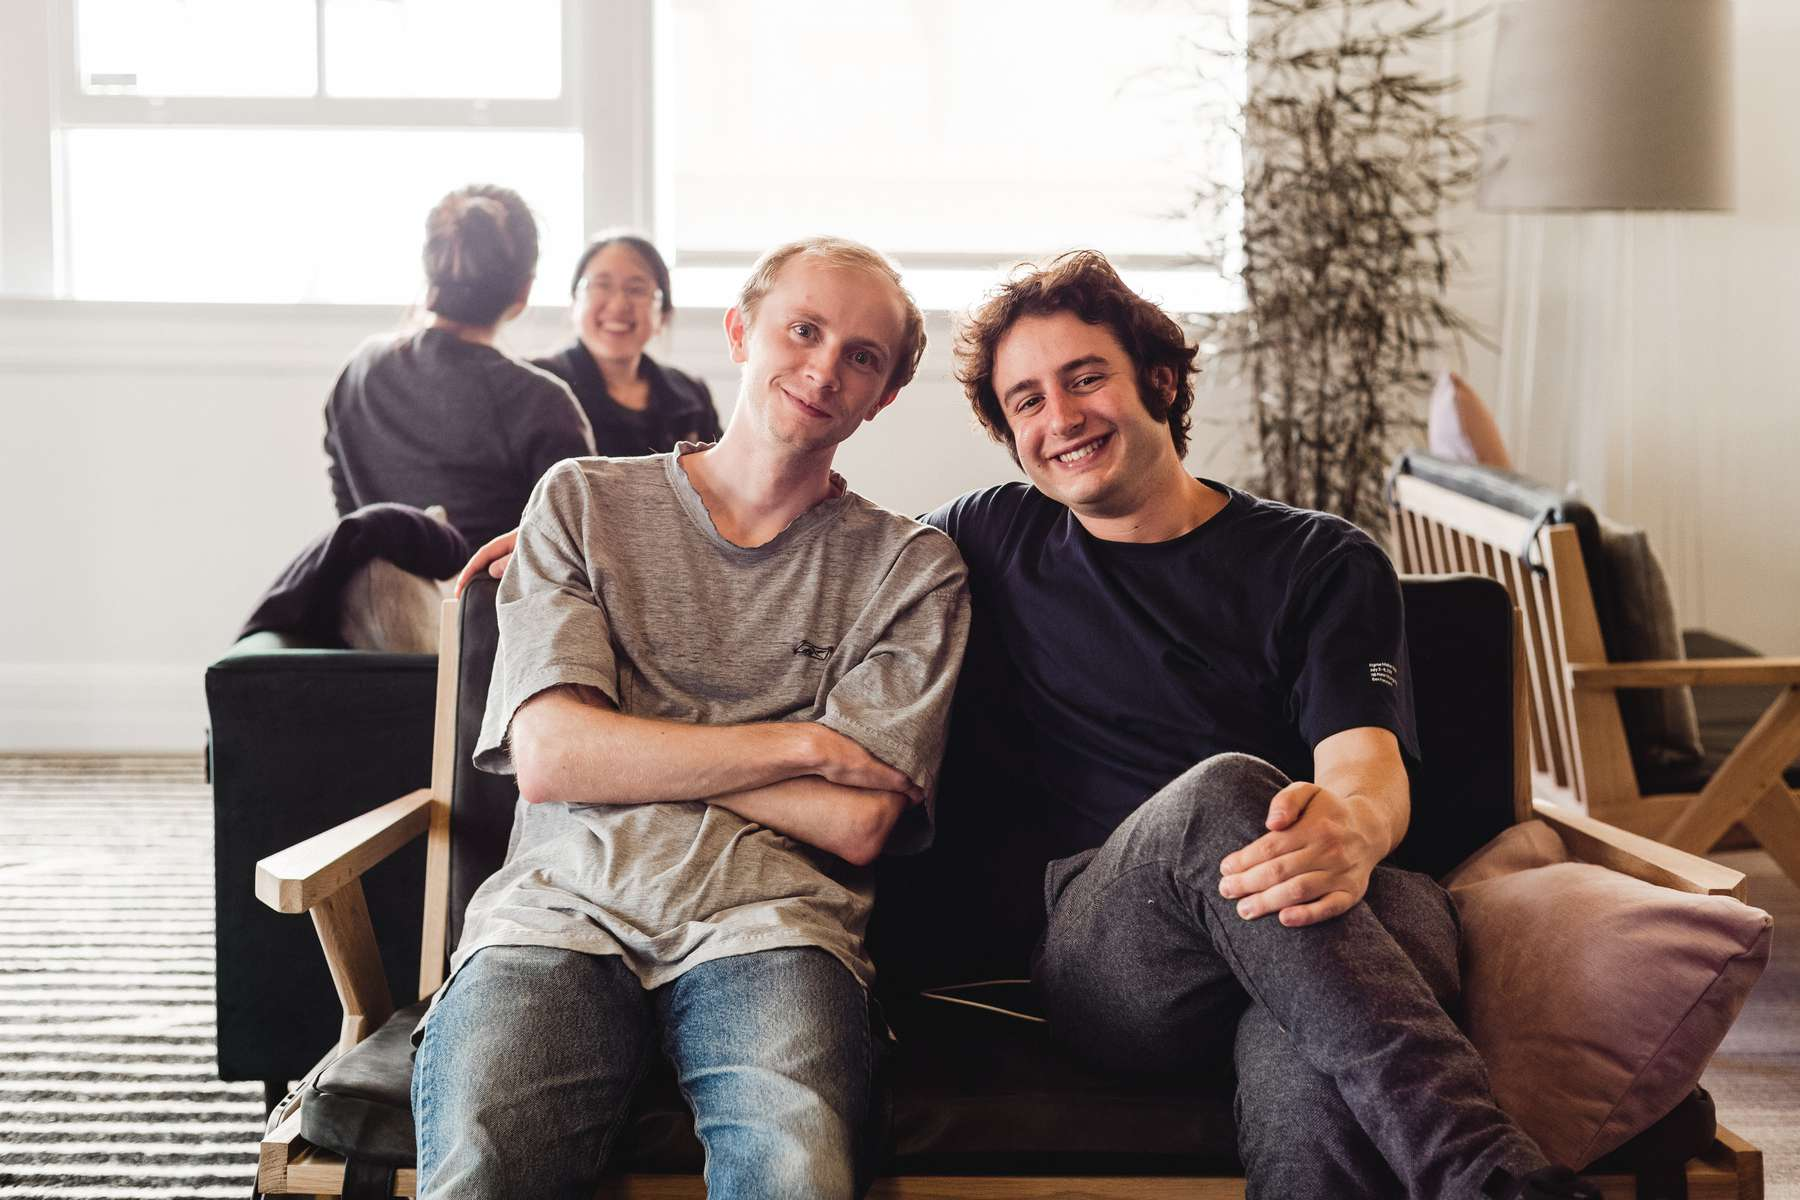 Figma's founders Dylan Field and Evan Wallace